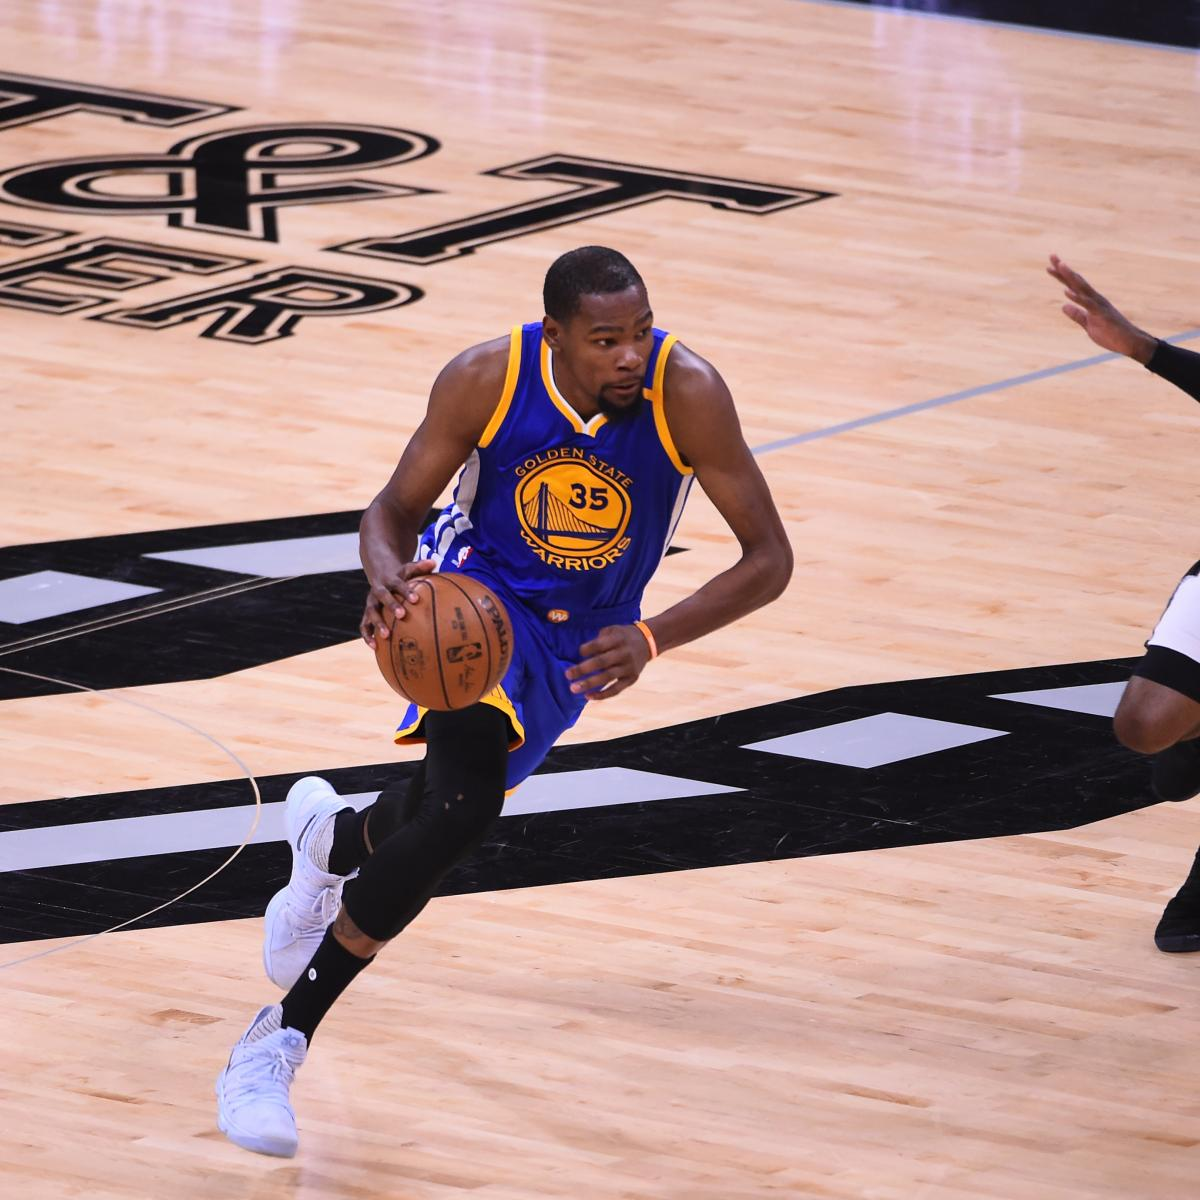 Watch Warriors Spurs Live Stream Free Online: Warriors Record Without Curry Vs Without Durant